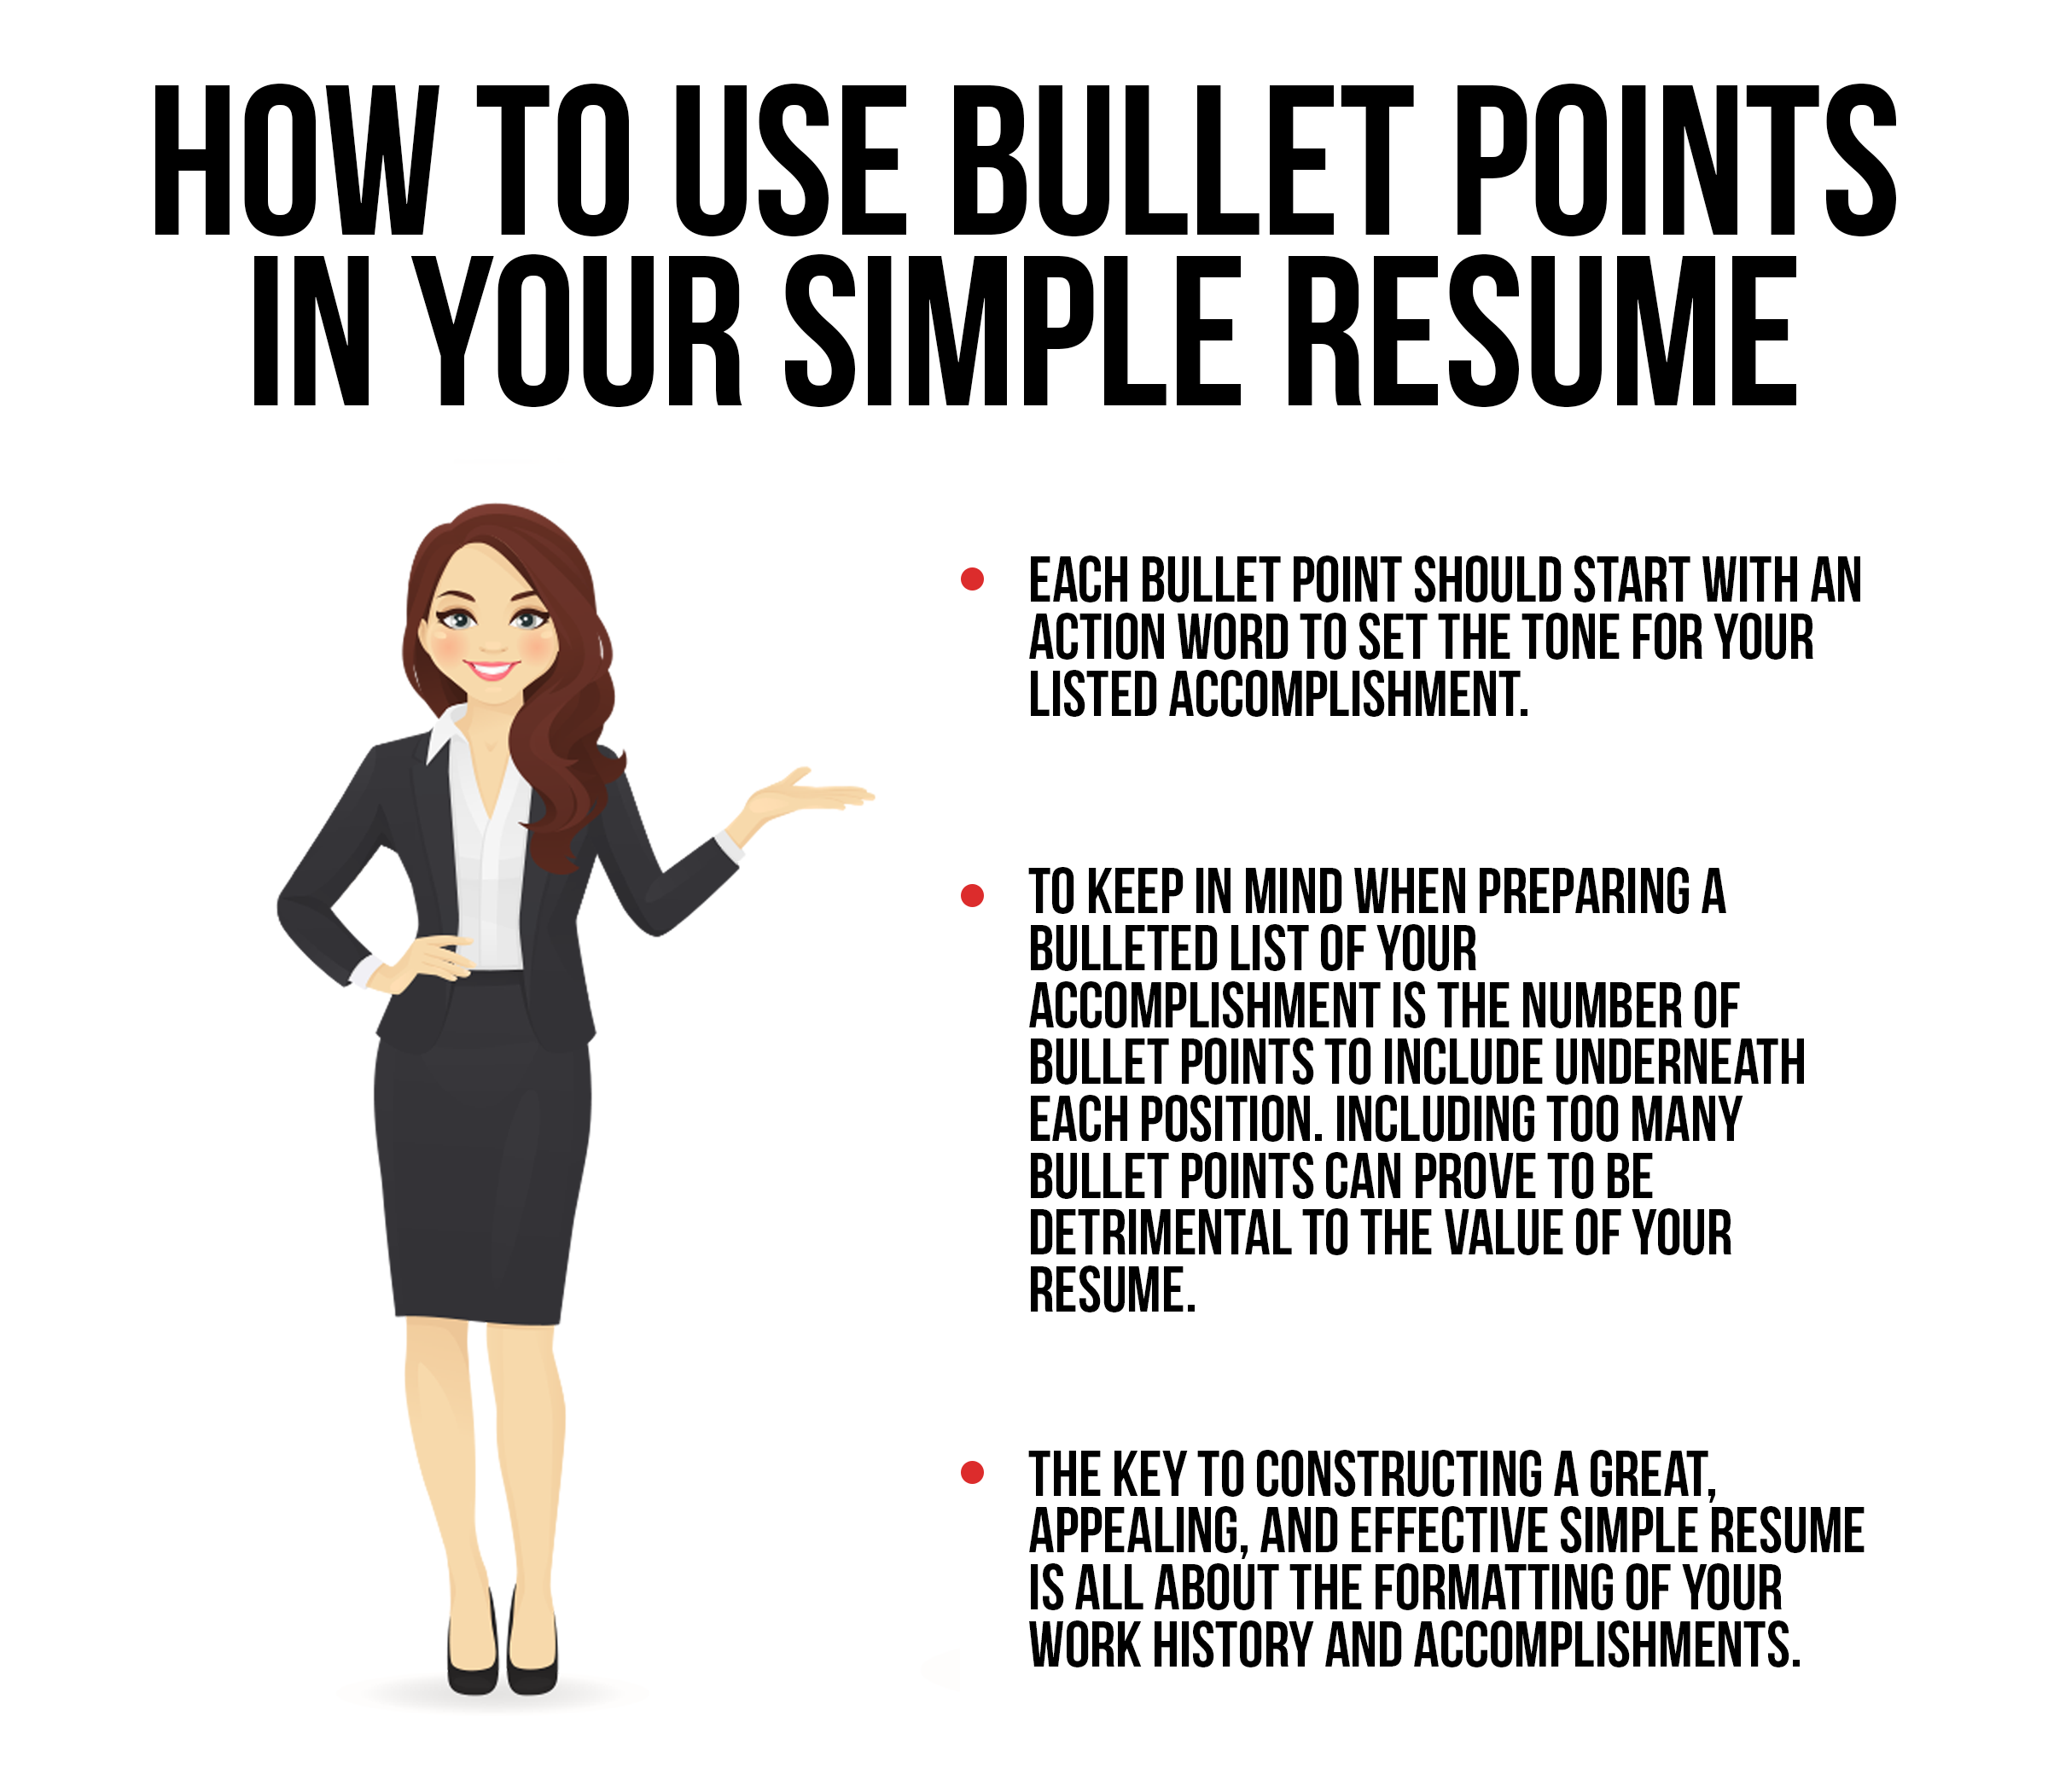 bullet points archives - simple resume by employment boost